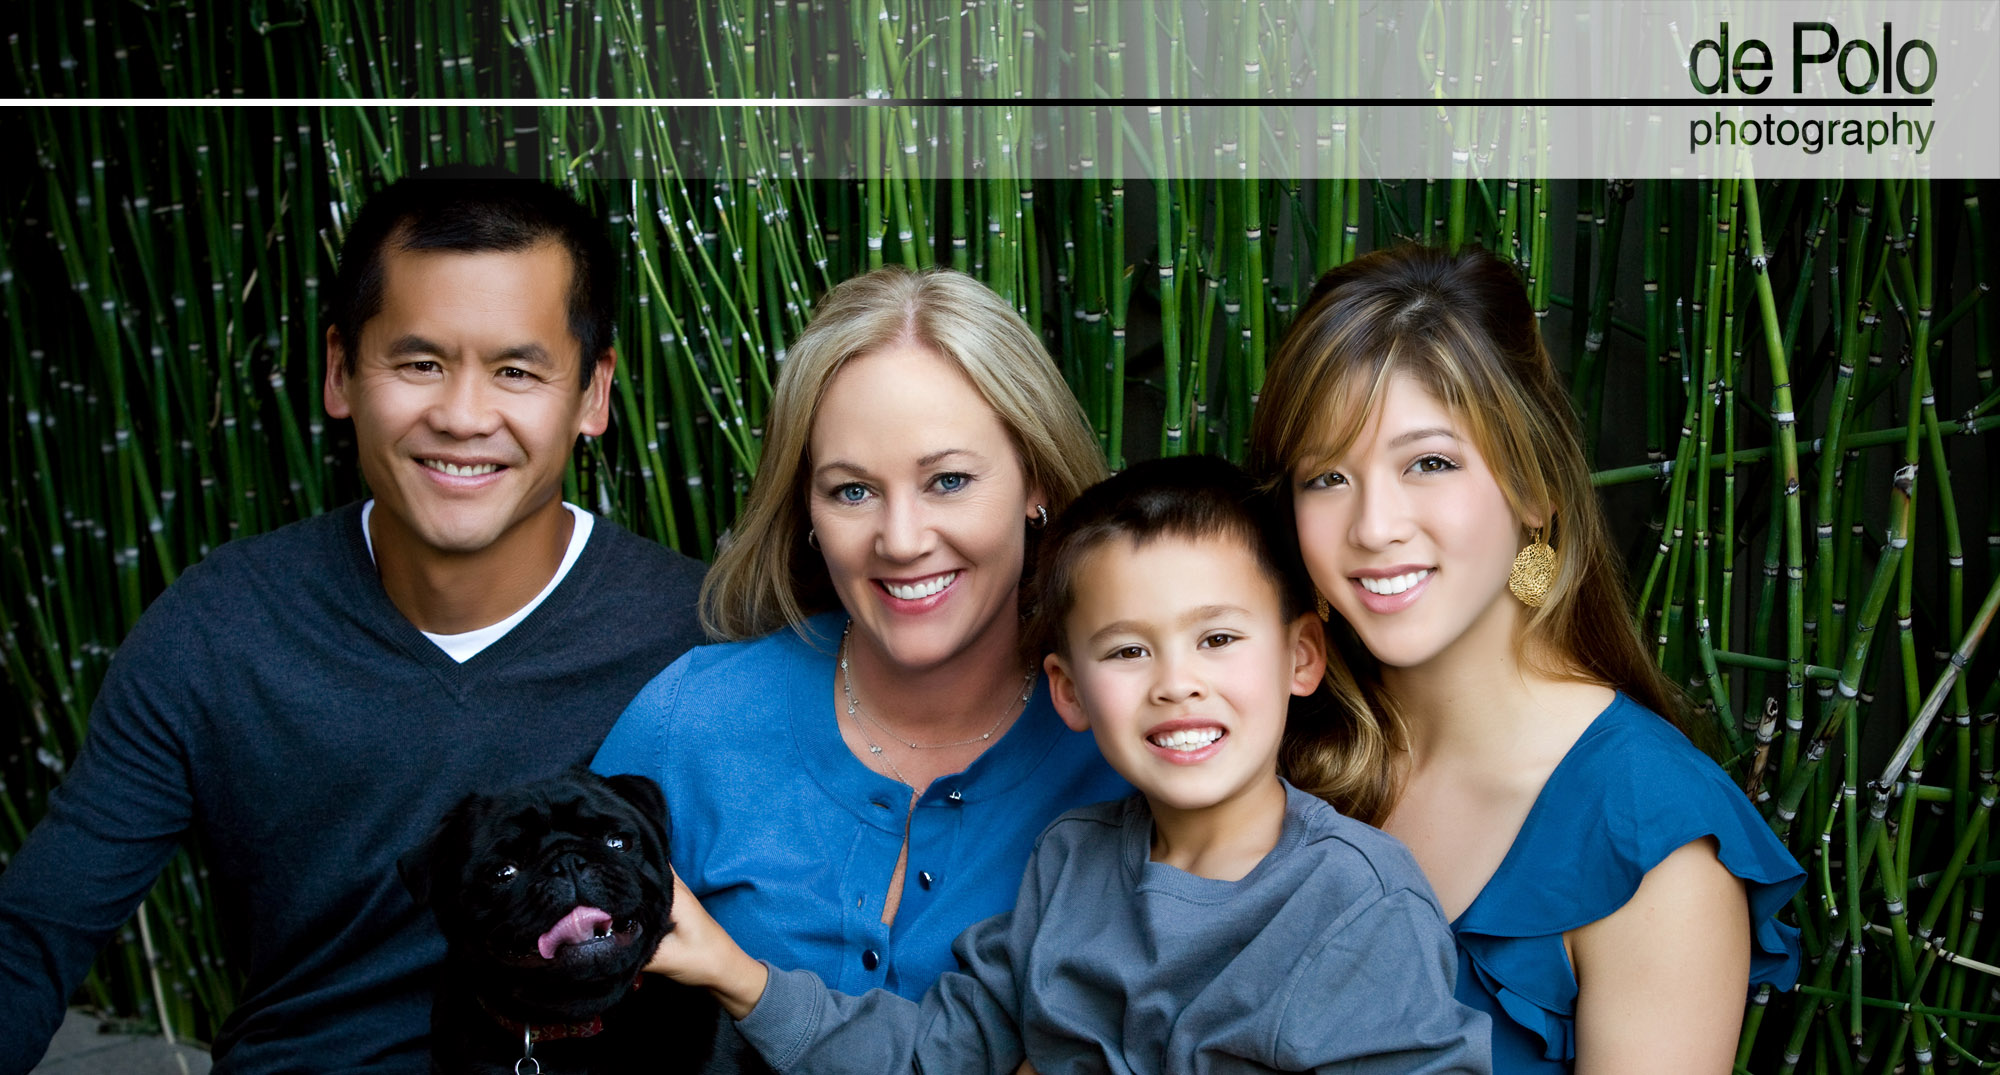 What a great way to spend an evening with your family and create an event that will last a lifetime! Dr. Lim hired me to do his business head shots for his new website and after showing me several sites that he liked we realized that a family portrait was what he needed. We designed the early evening Family Portrait session in Portola Valley. When I arrived I was pulled help with the final clothing consultation, then they grabbed their pug dog and off we went. When we finally met to view the images they were thrilled, one portrait was for their Christmas card and several others now hang in various rooms of their home. Both children got the story board collections and Dr. Lim has a 9UP collection hanging in his office. His wife was thrilled not to have to do all that work herself, with all the various custom frames I carry, it was easy to design multiple pieces for them.